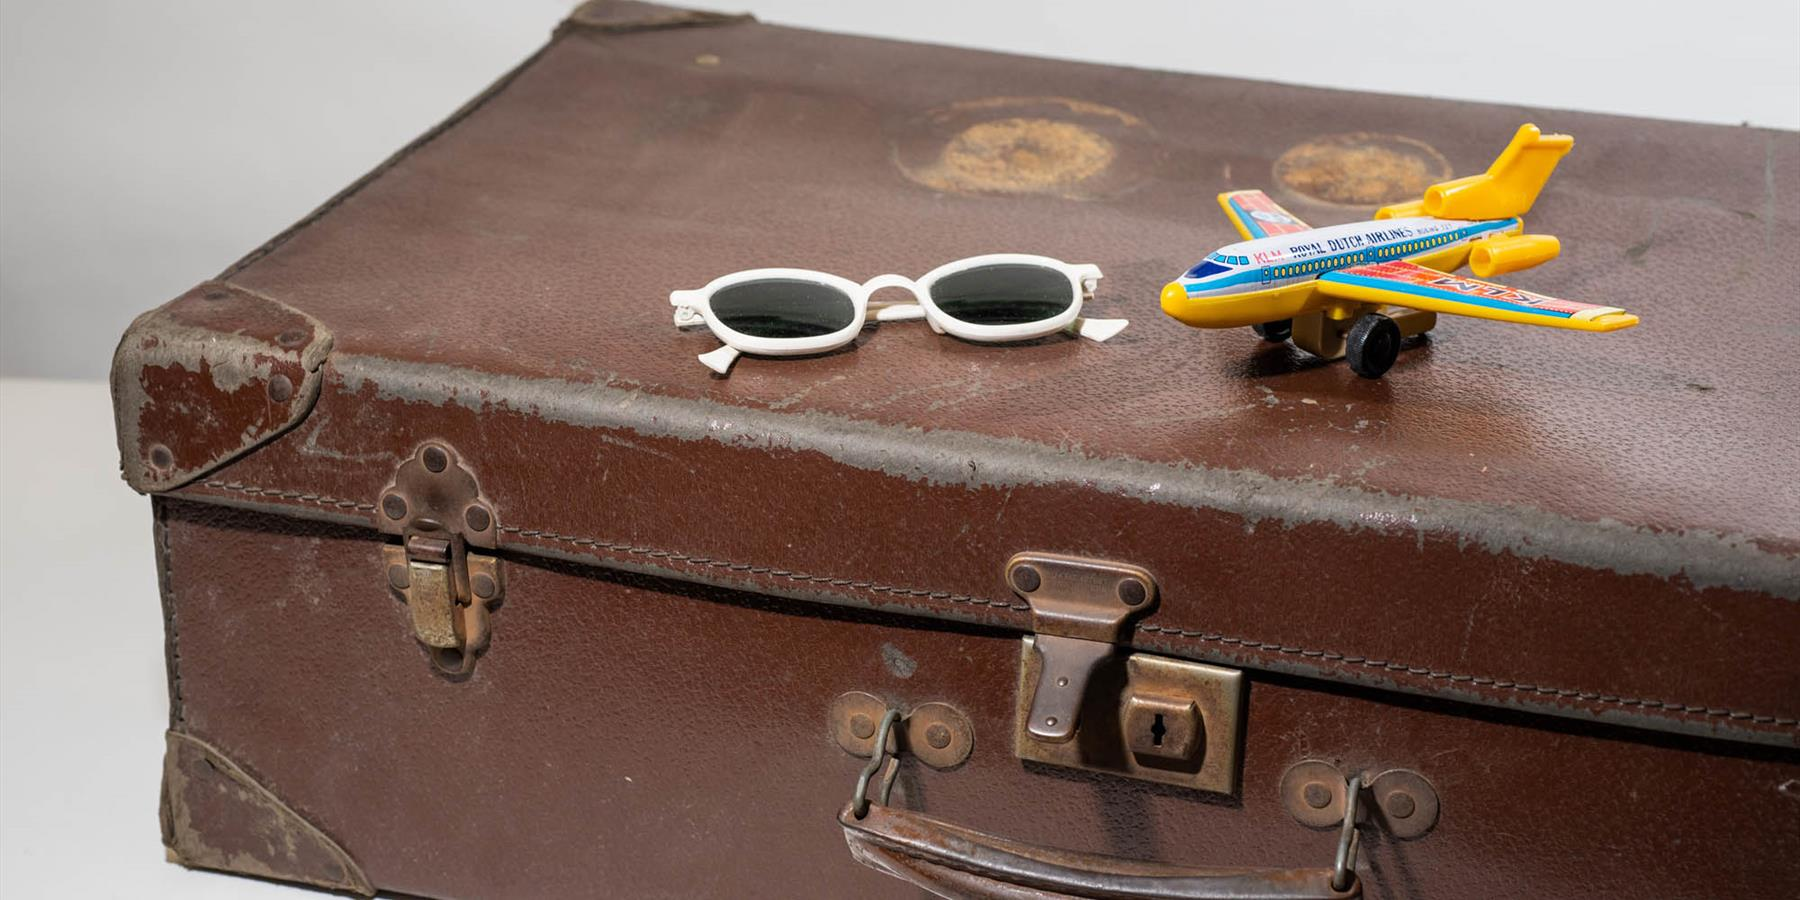 Sunglasses and suitcase